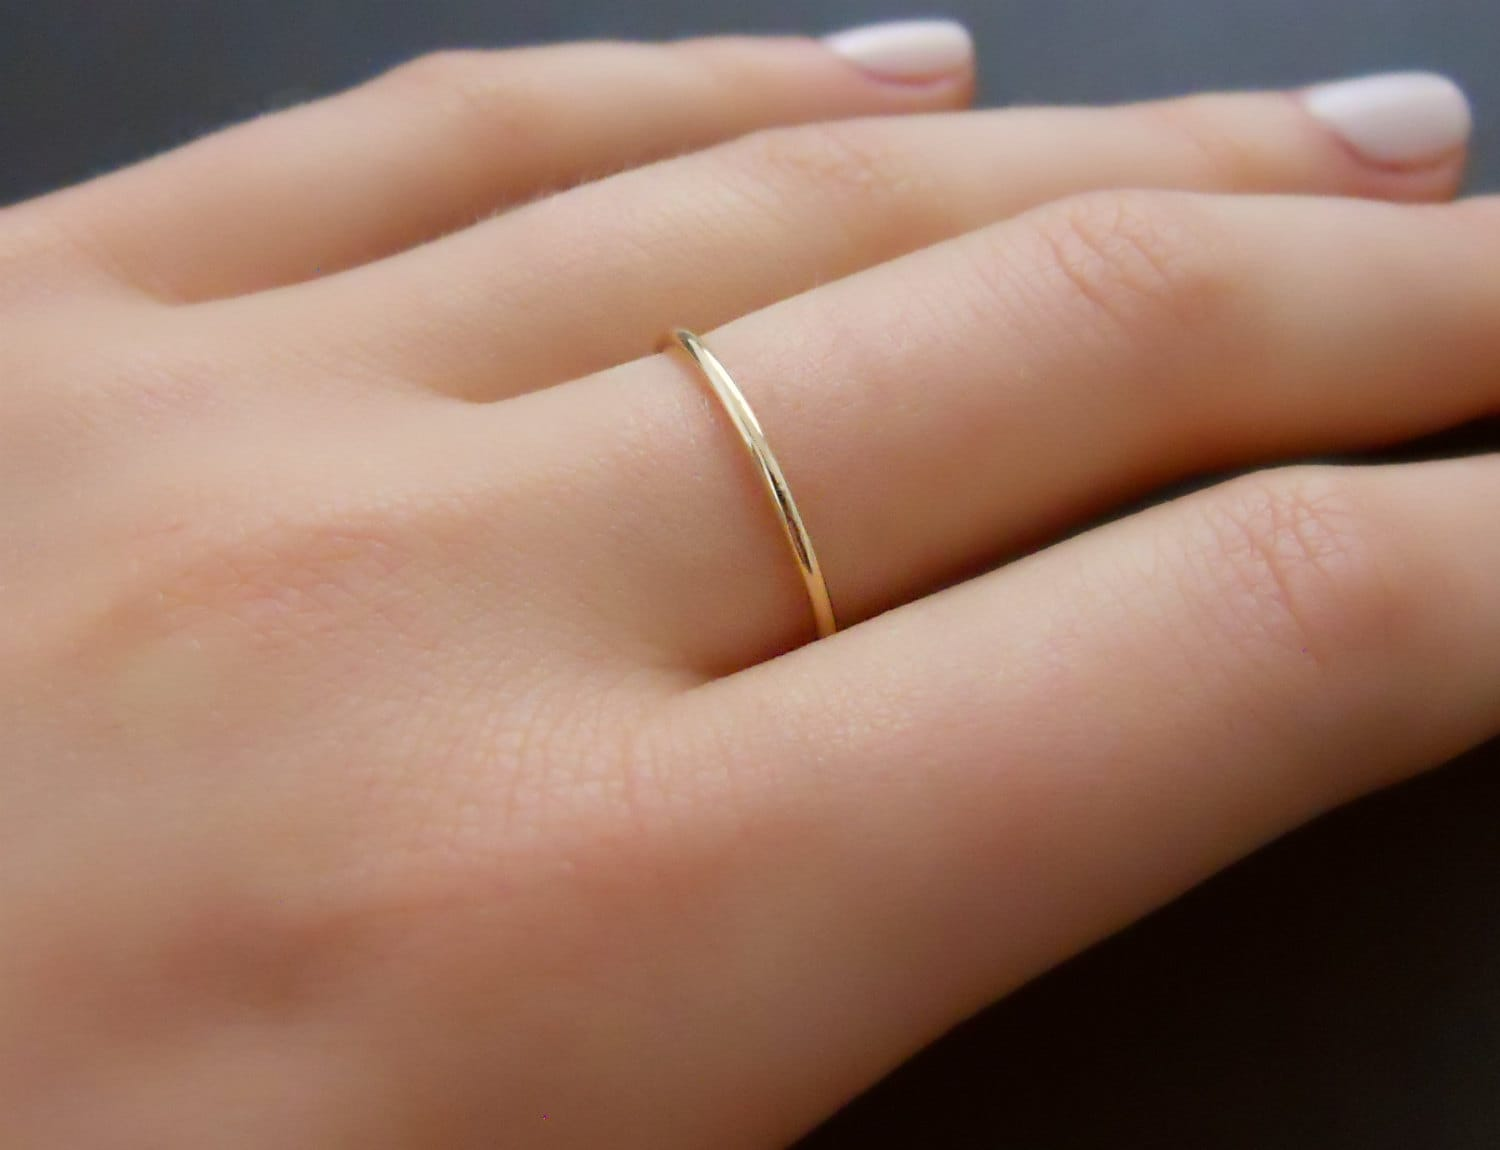 Awesome Simple Gold Rings For Girls With Price Ideas - Jewelry ...